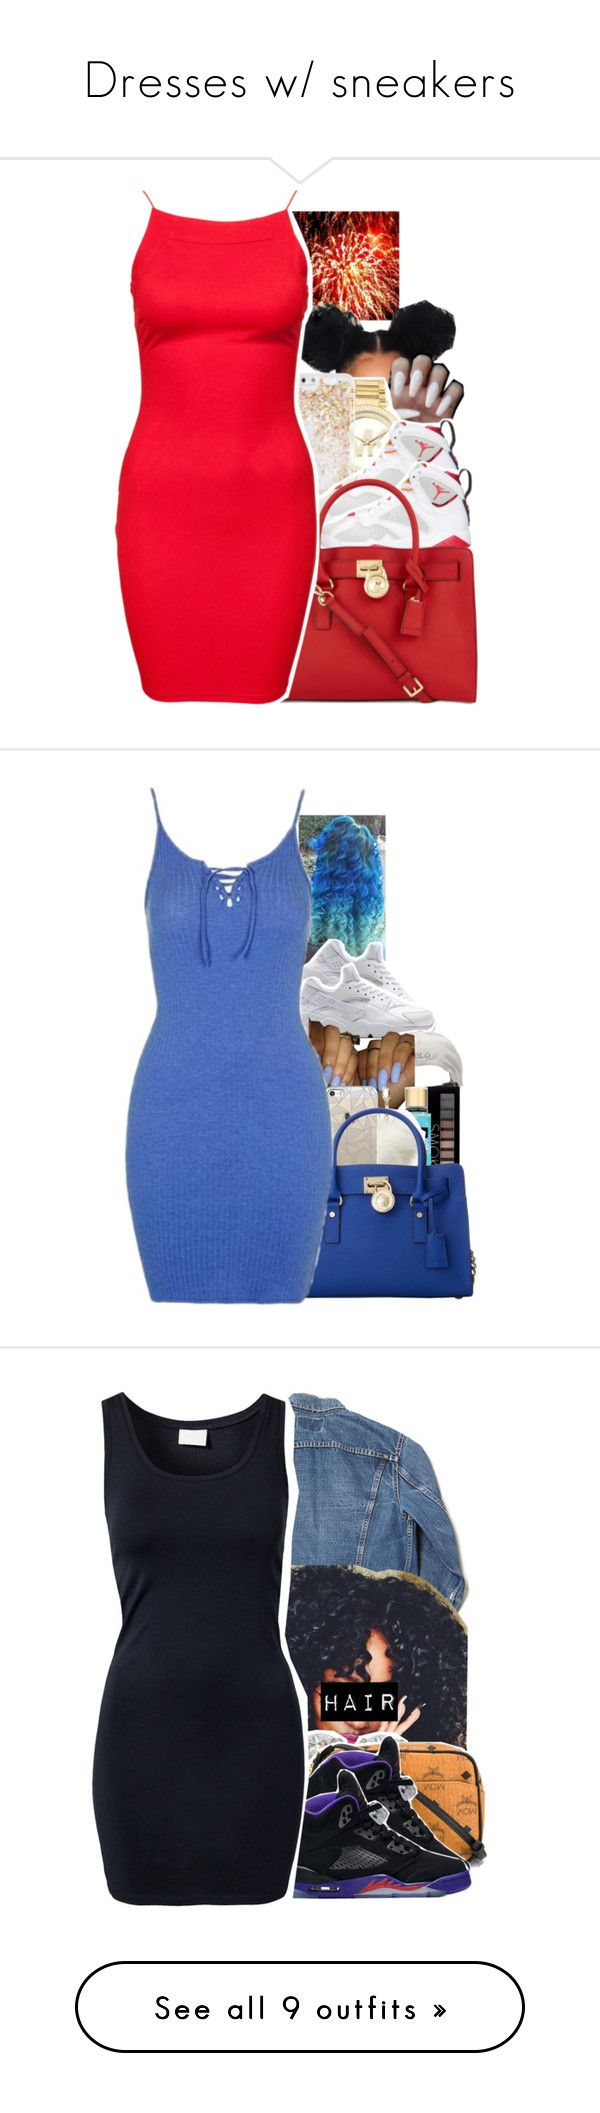 """Dresses w/ sneakers"" by uniquee-beauty ❤ liked on Polyvore featuring Michael Kors, ban.do, Retrò, AX Paris, NIKE, Polo Ralph Lauren, Forever 21, Charlotte Russe, Casetify and MICHAEL Michael Kors"